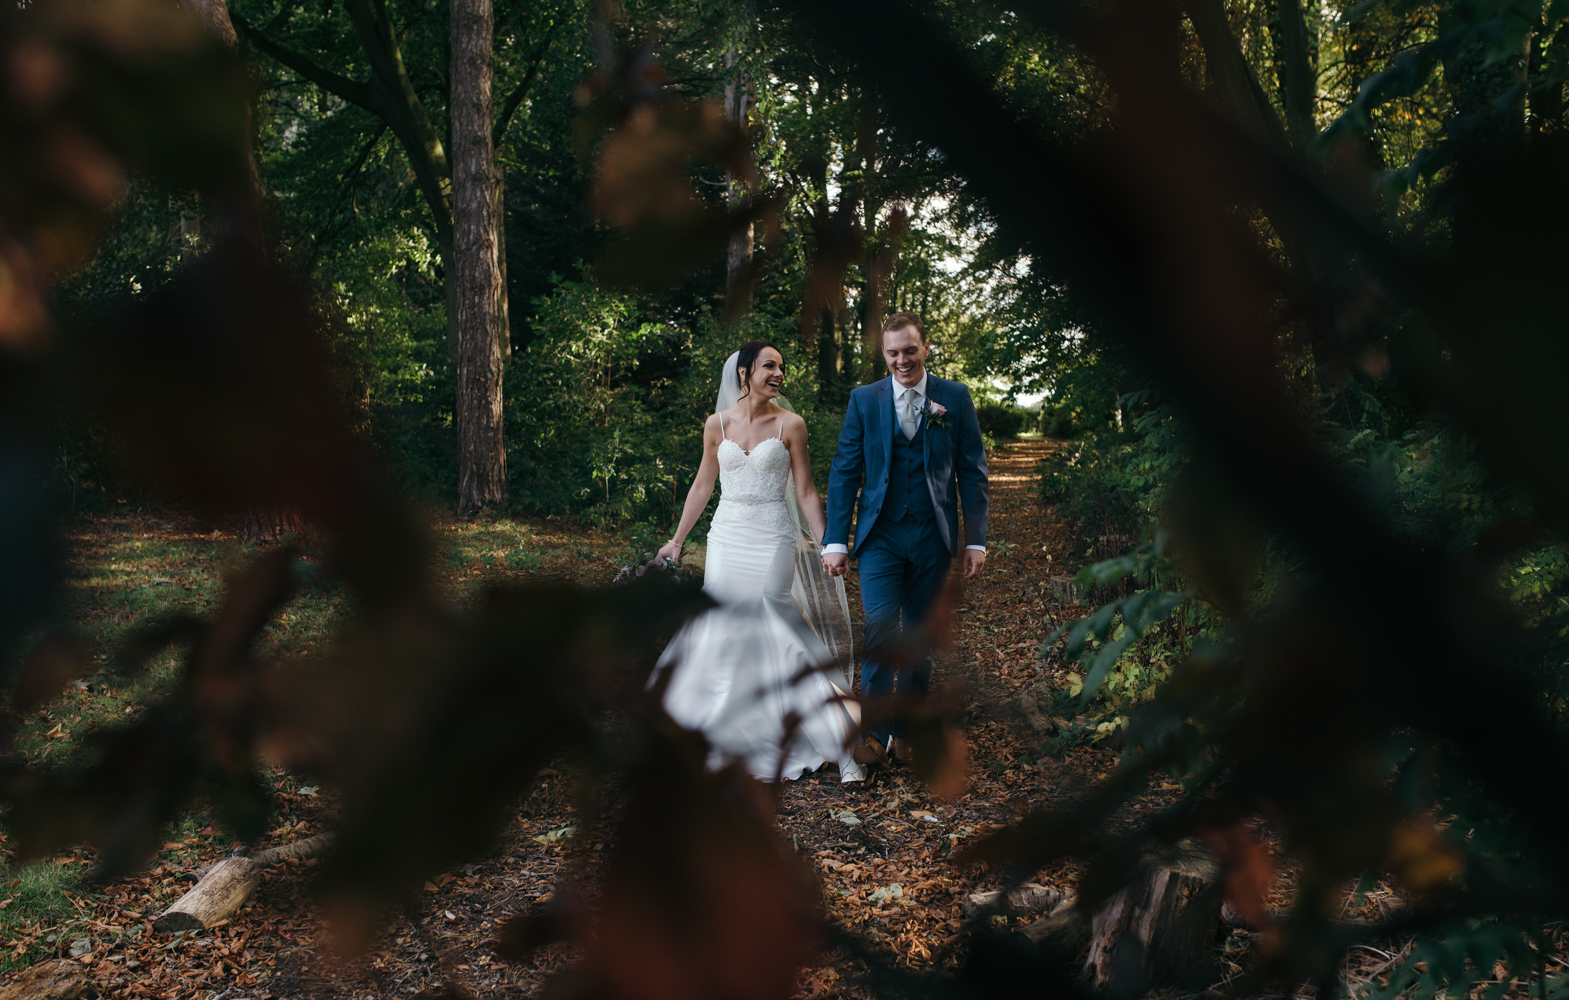 The bride and groom walking through the woods